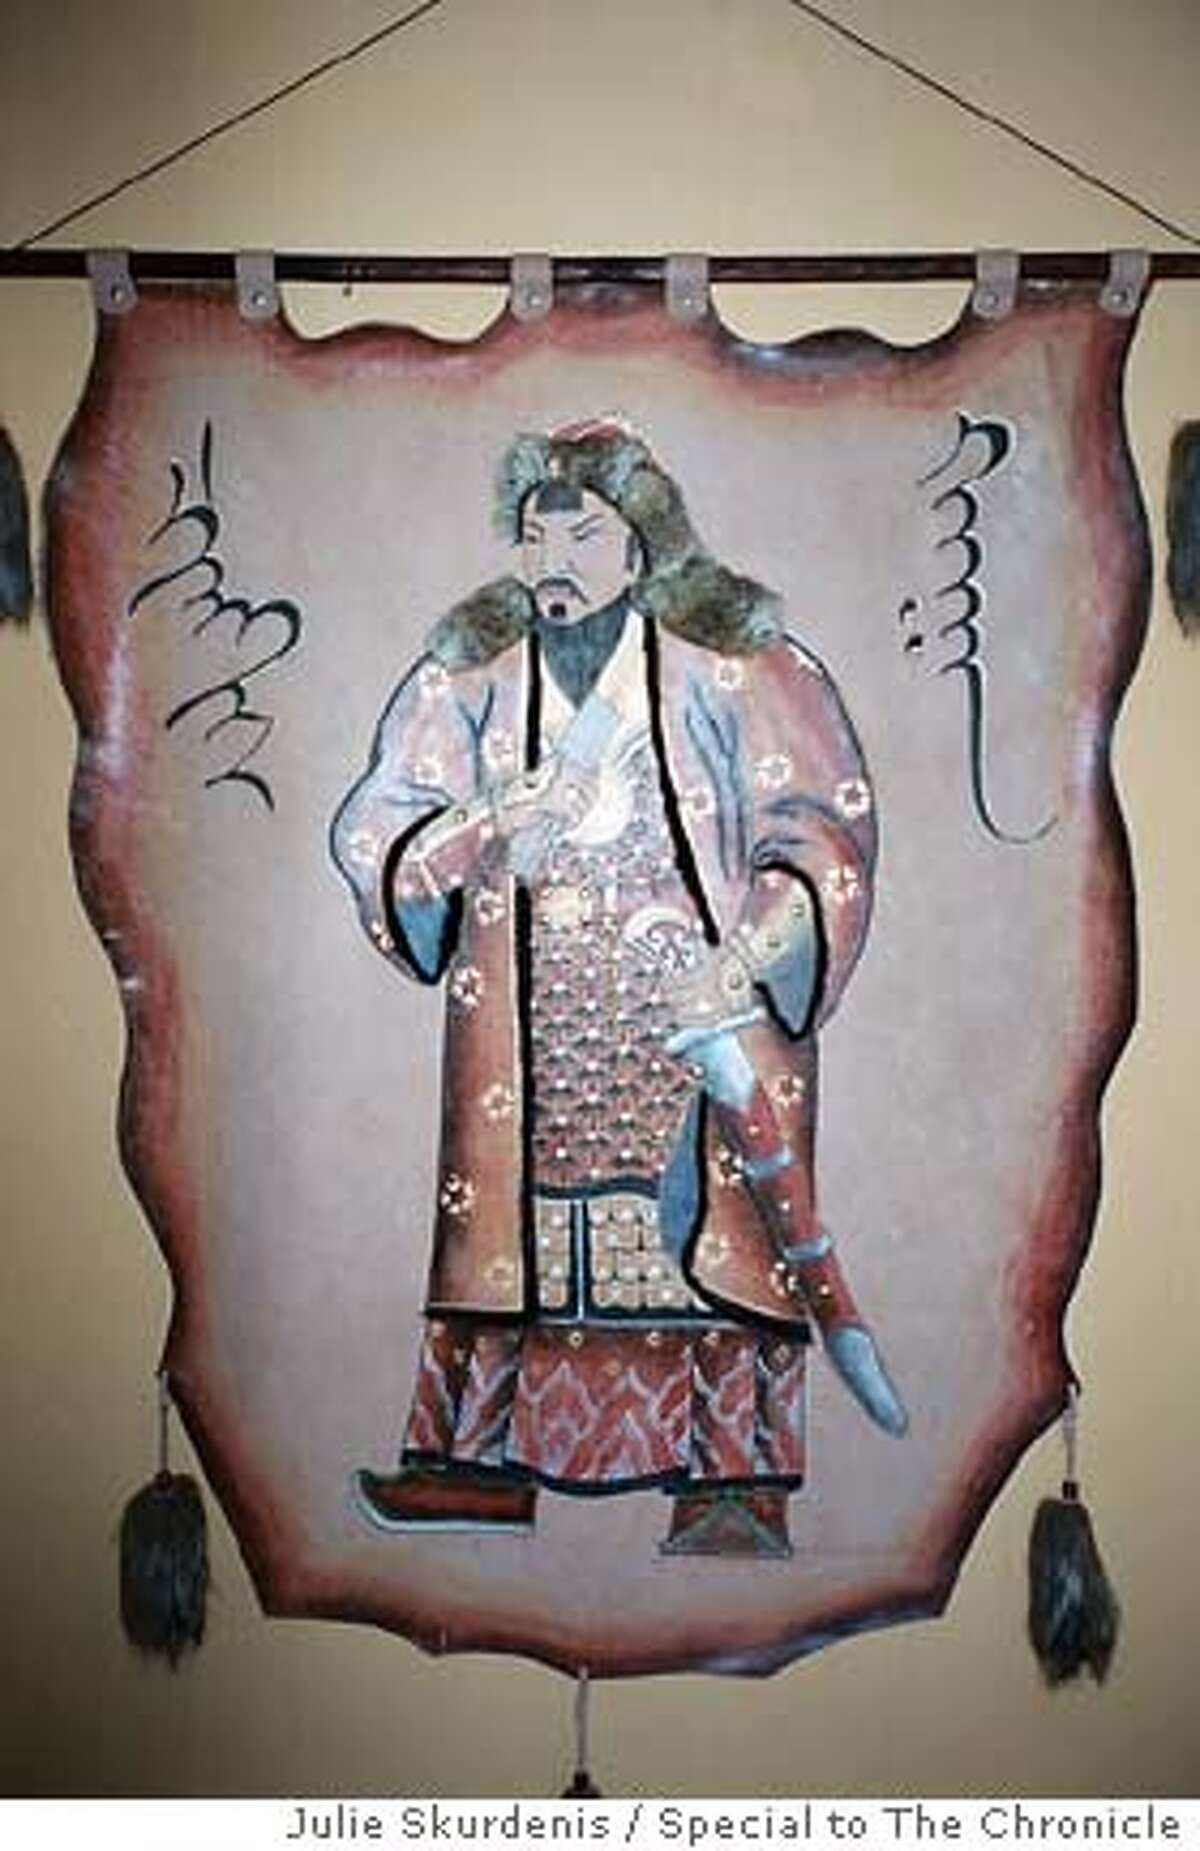 The image of Genghis Khan (better known in the Mongoliaas Chinggis) on leather hangs in an Ulan Batar restaurant. Photo by Julie Skurdenis, special to the Chronicle